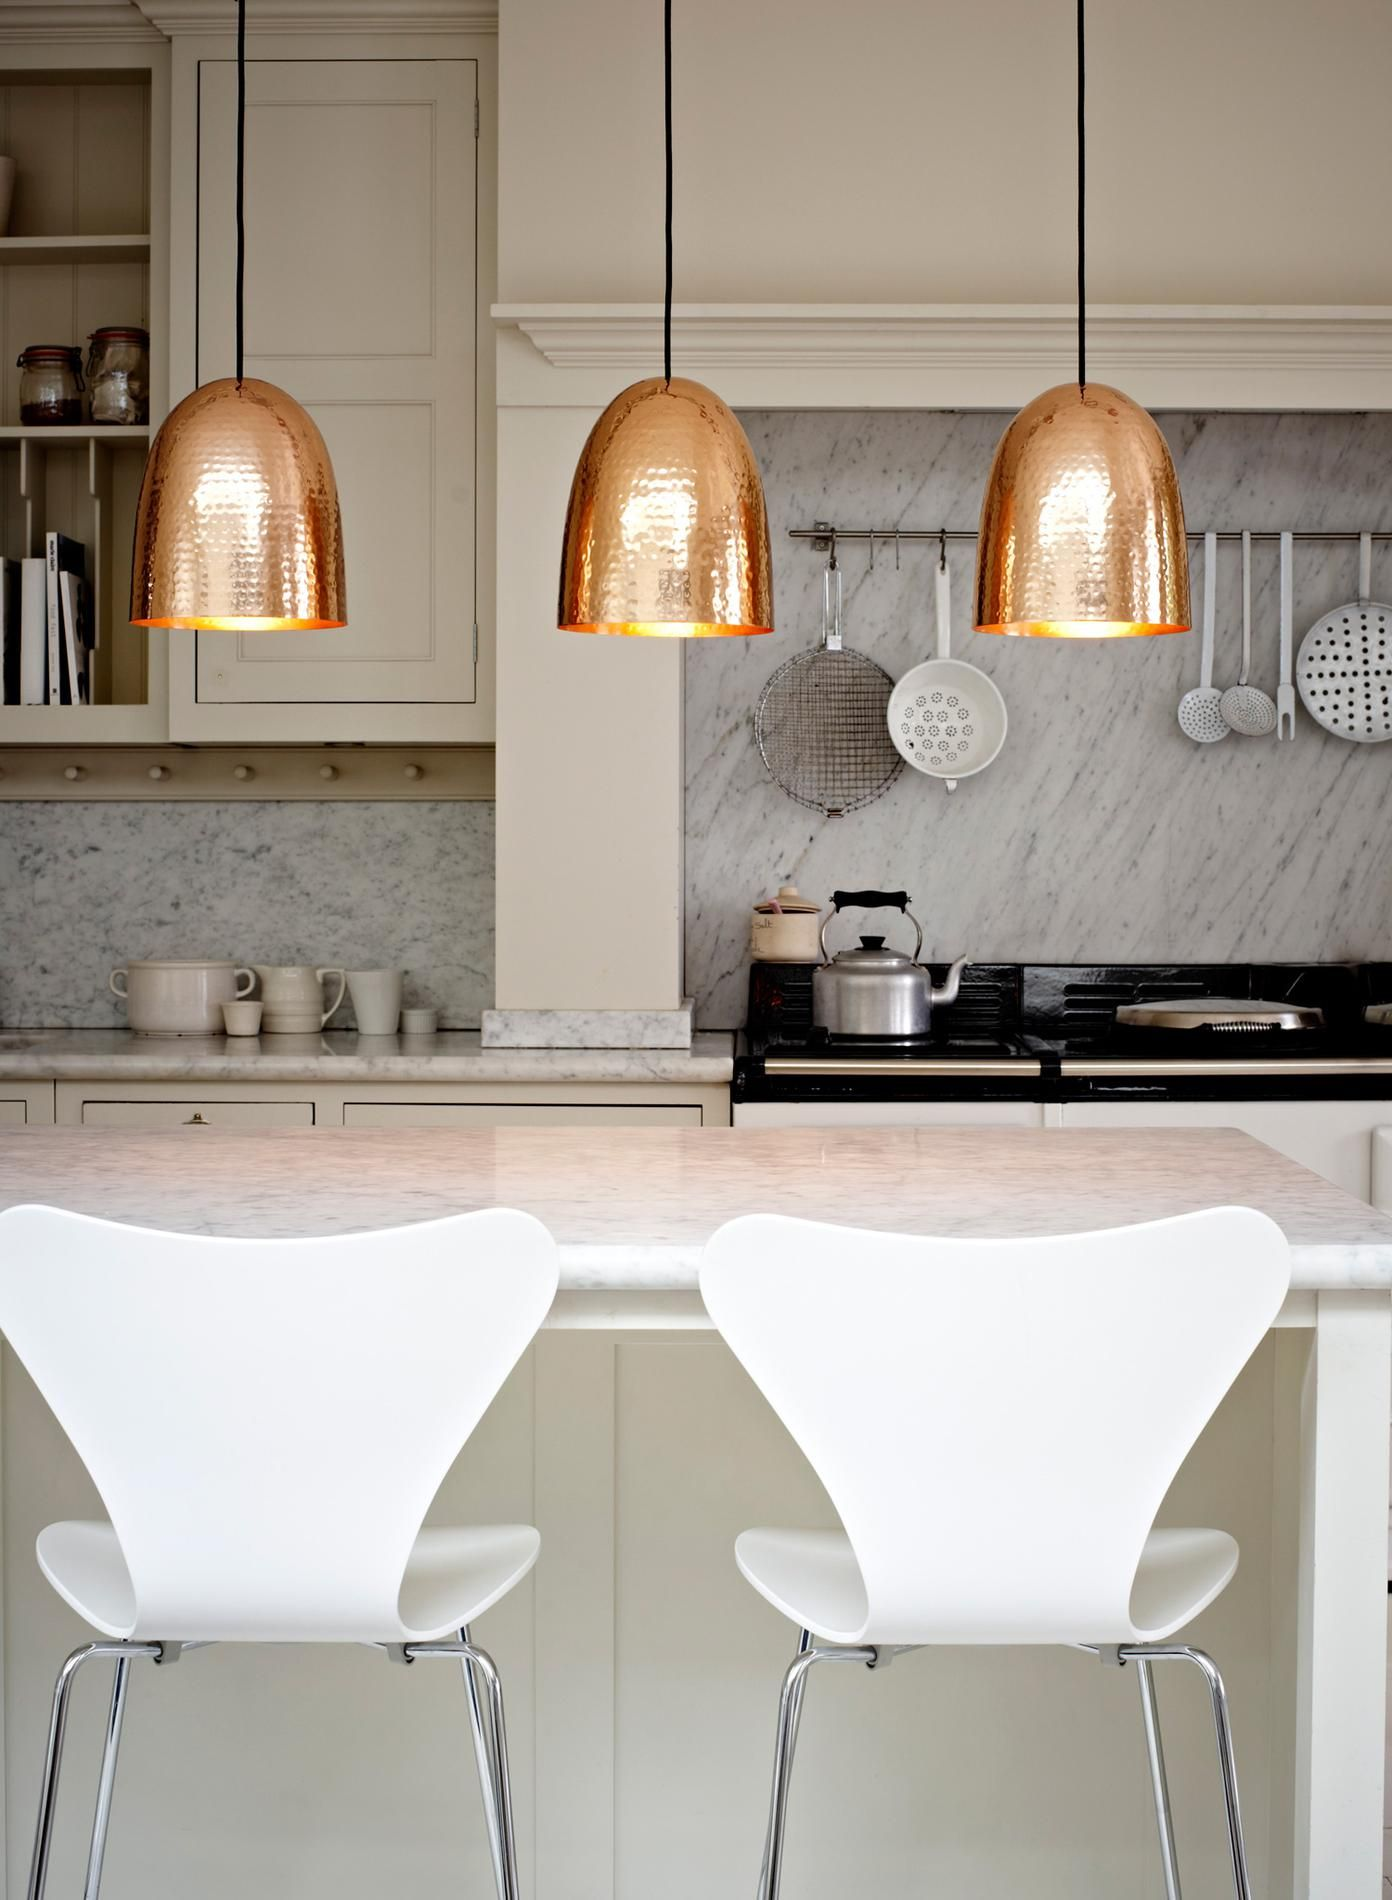 Examples Of Copper Pendant Lighting For Your Home - Kitchen lights over breakfast bar